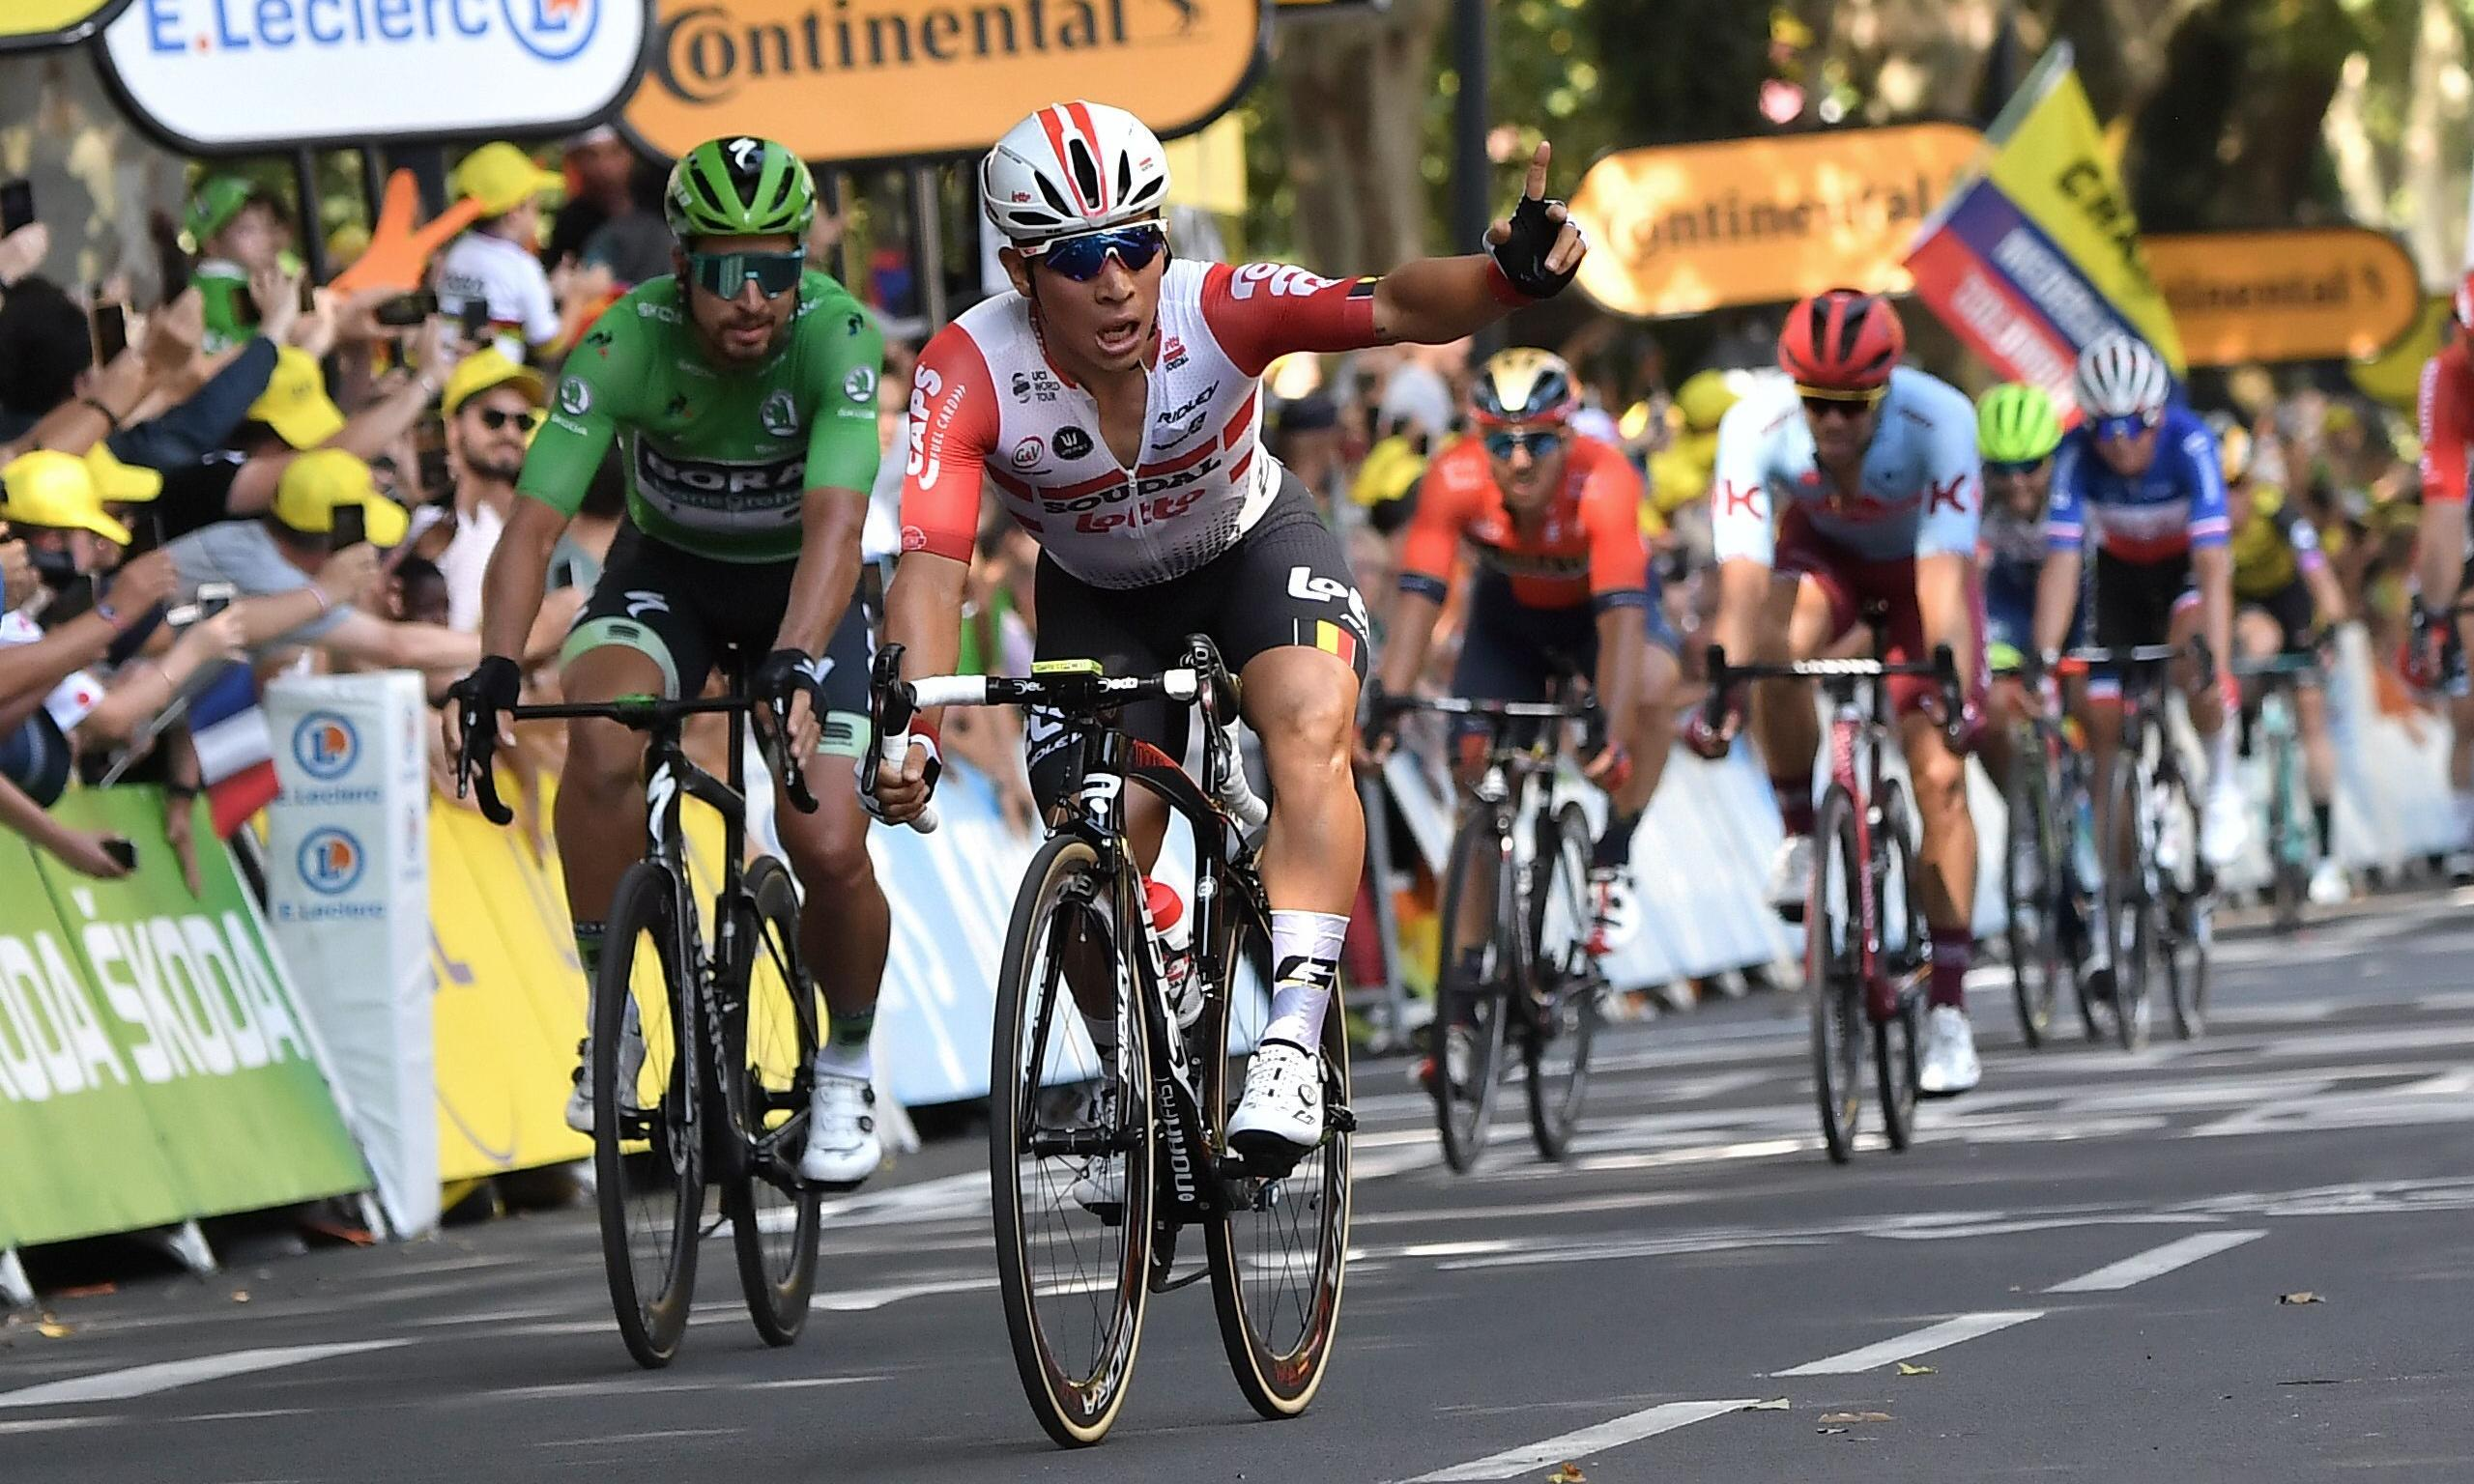 Caleb Ewan wins Tour de France stage 11 as Julian Alaphilippe stays in yellow